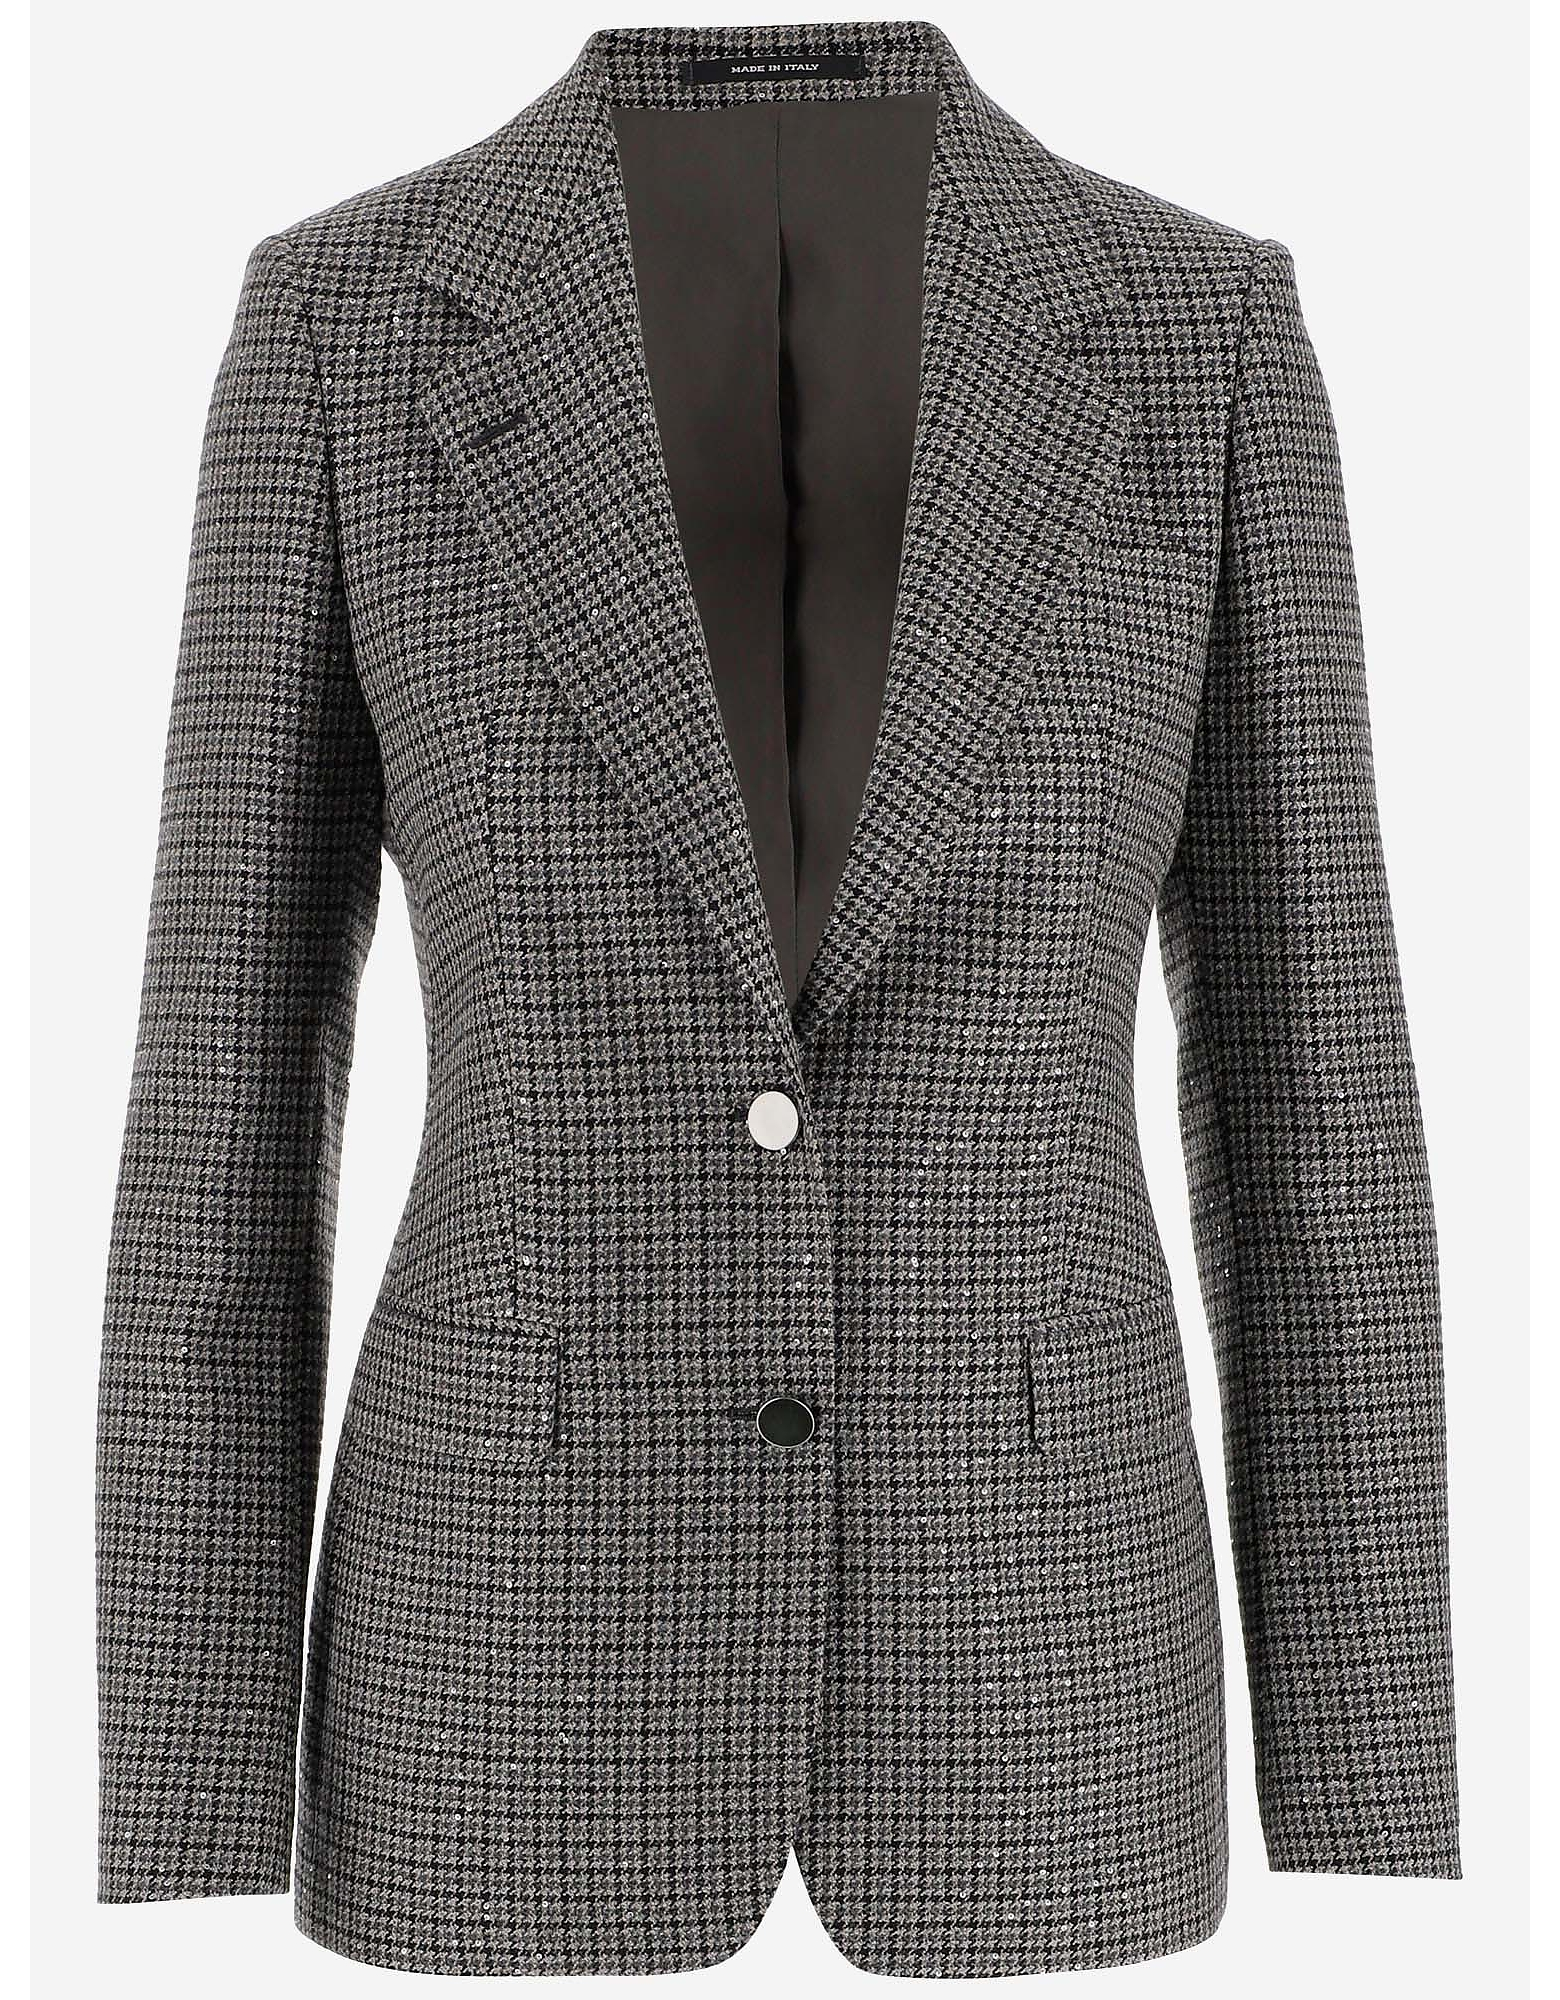 Tagliatore Designer Coats & Jackets, Wool Blend Women's Tailored Blazer